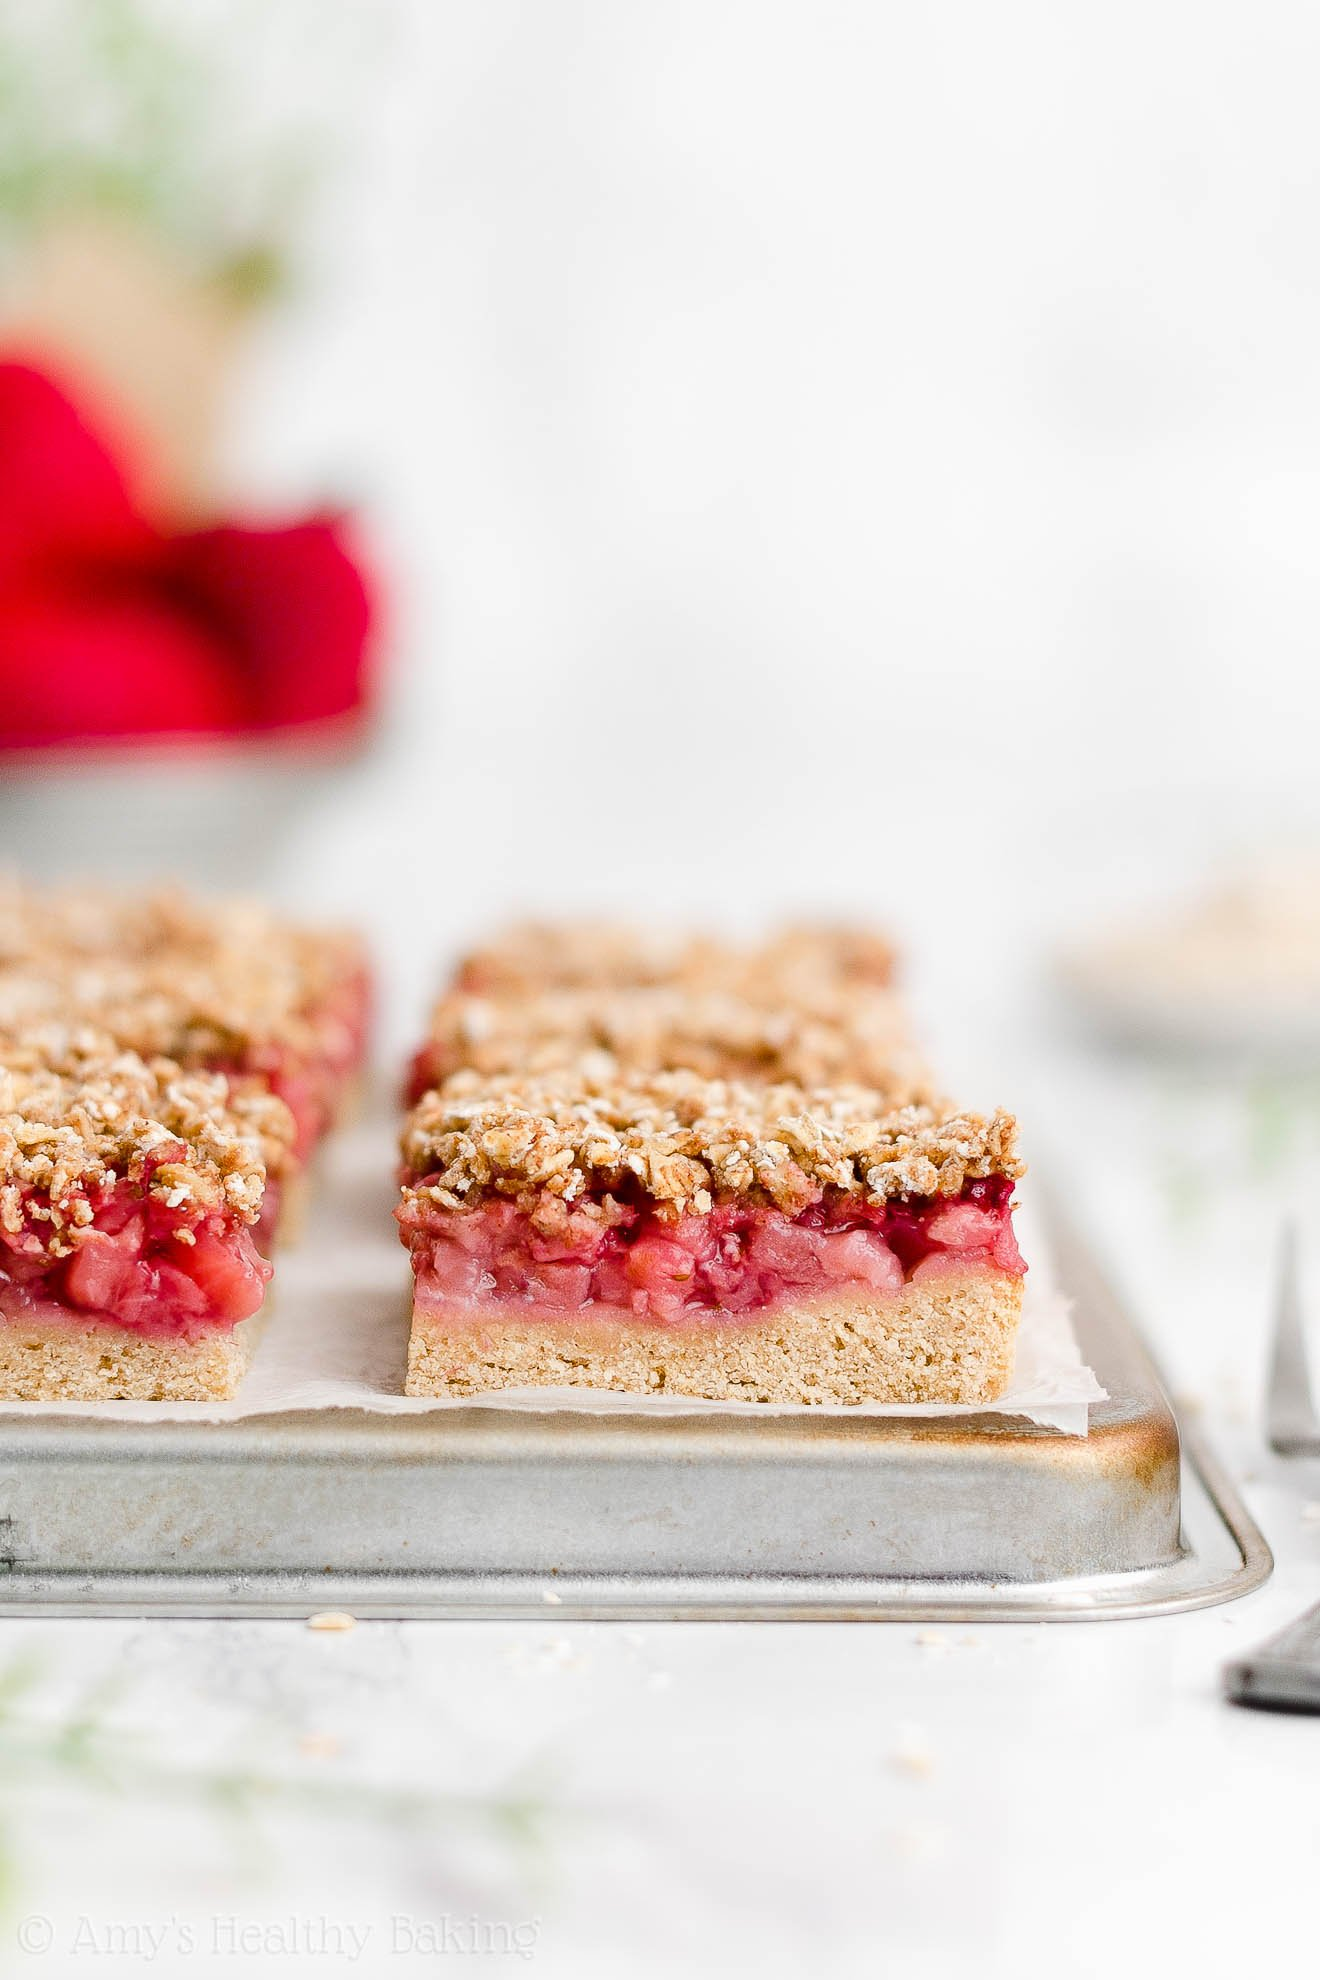 Best Easy Healthy Low Fat Whole Wheat Sugar Free Strawberry Oat Crumble Bars